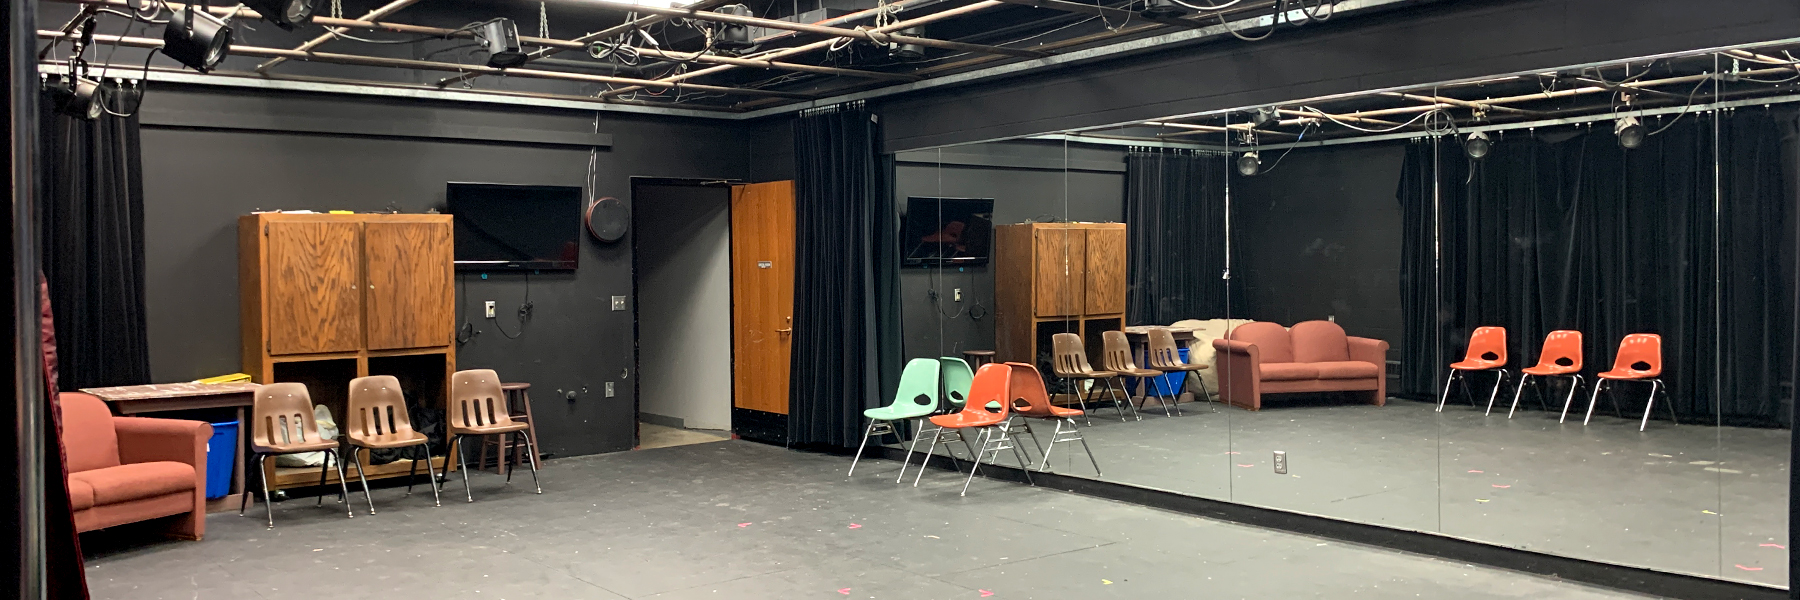 Black box theatre area